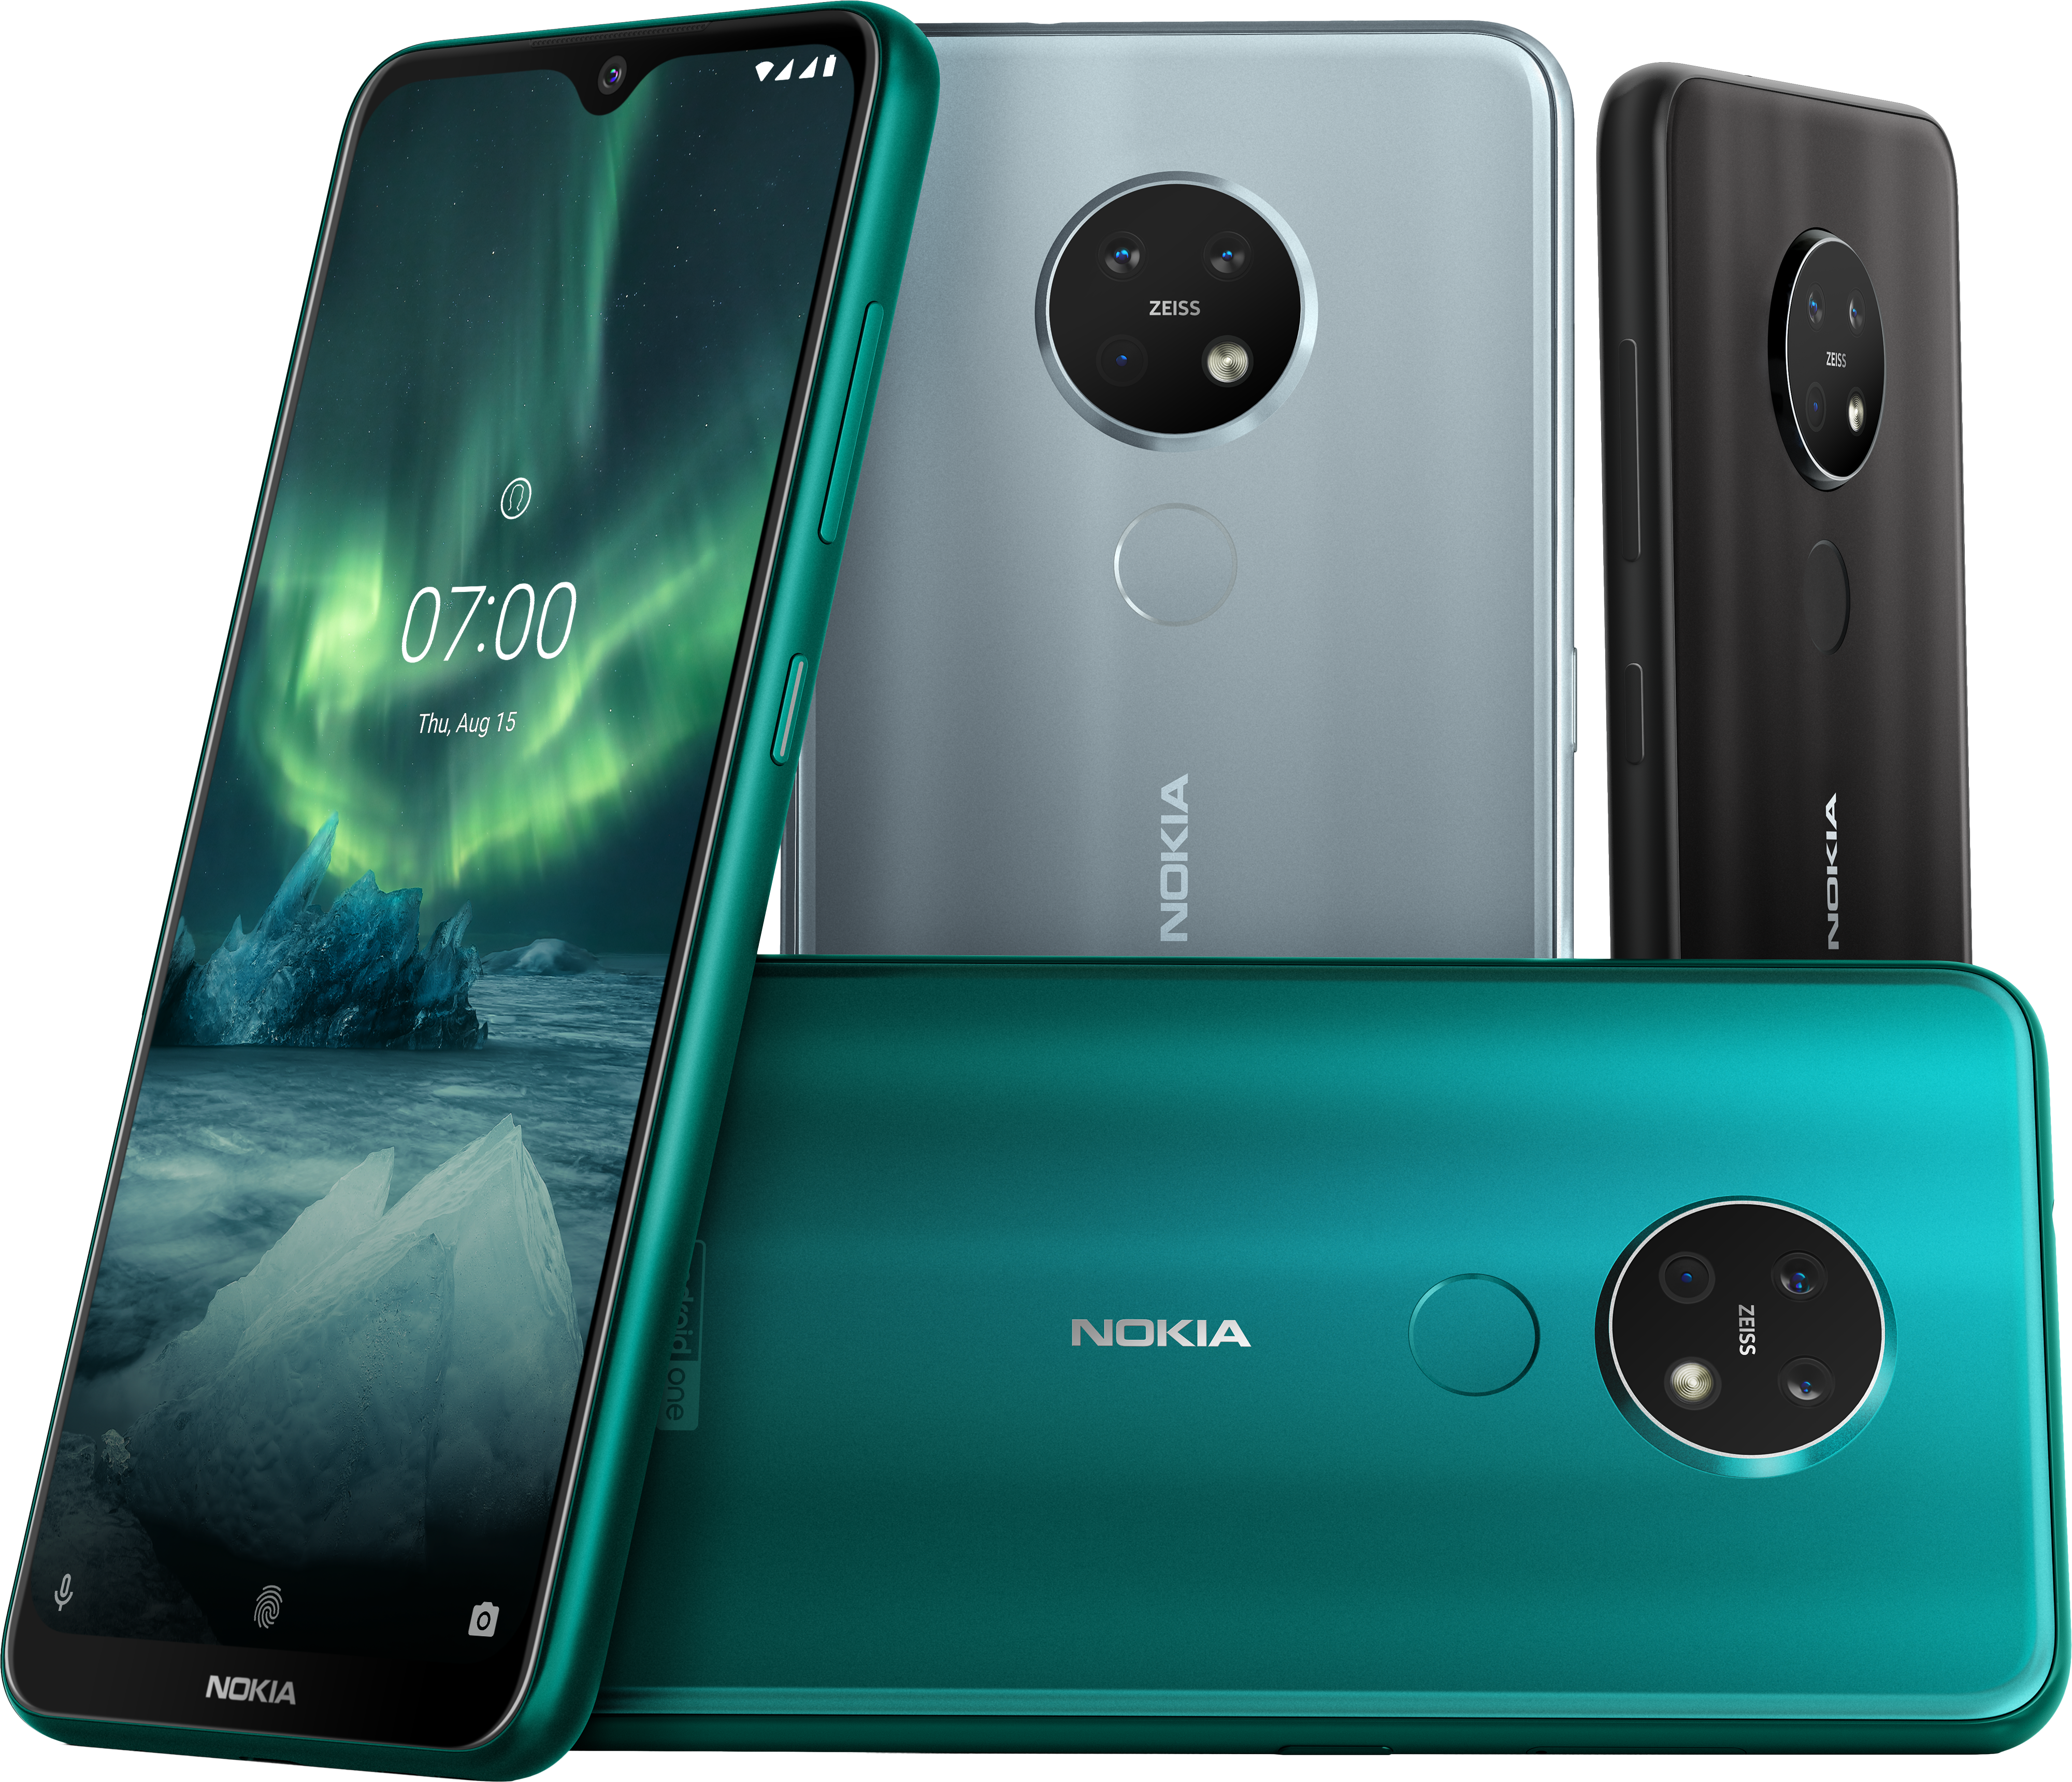 A collection of Nokia 7.2 smartphones in a range of colors.